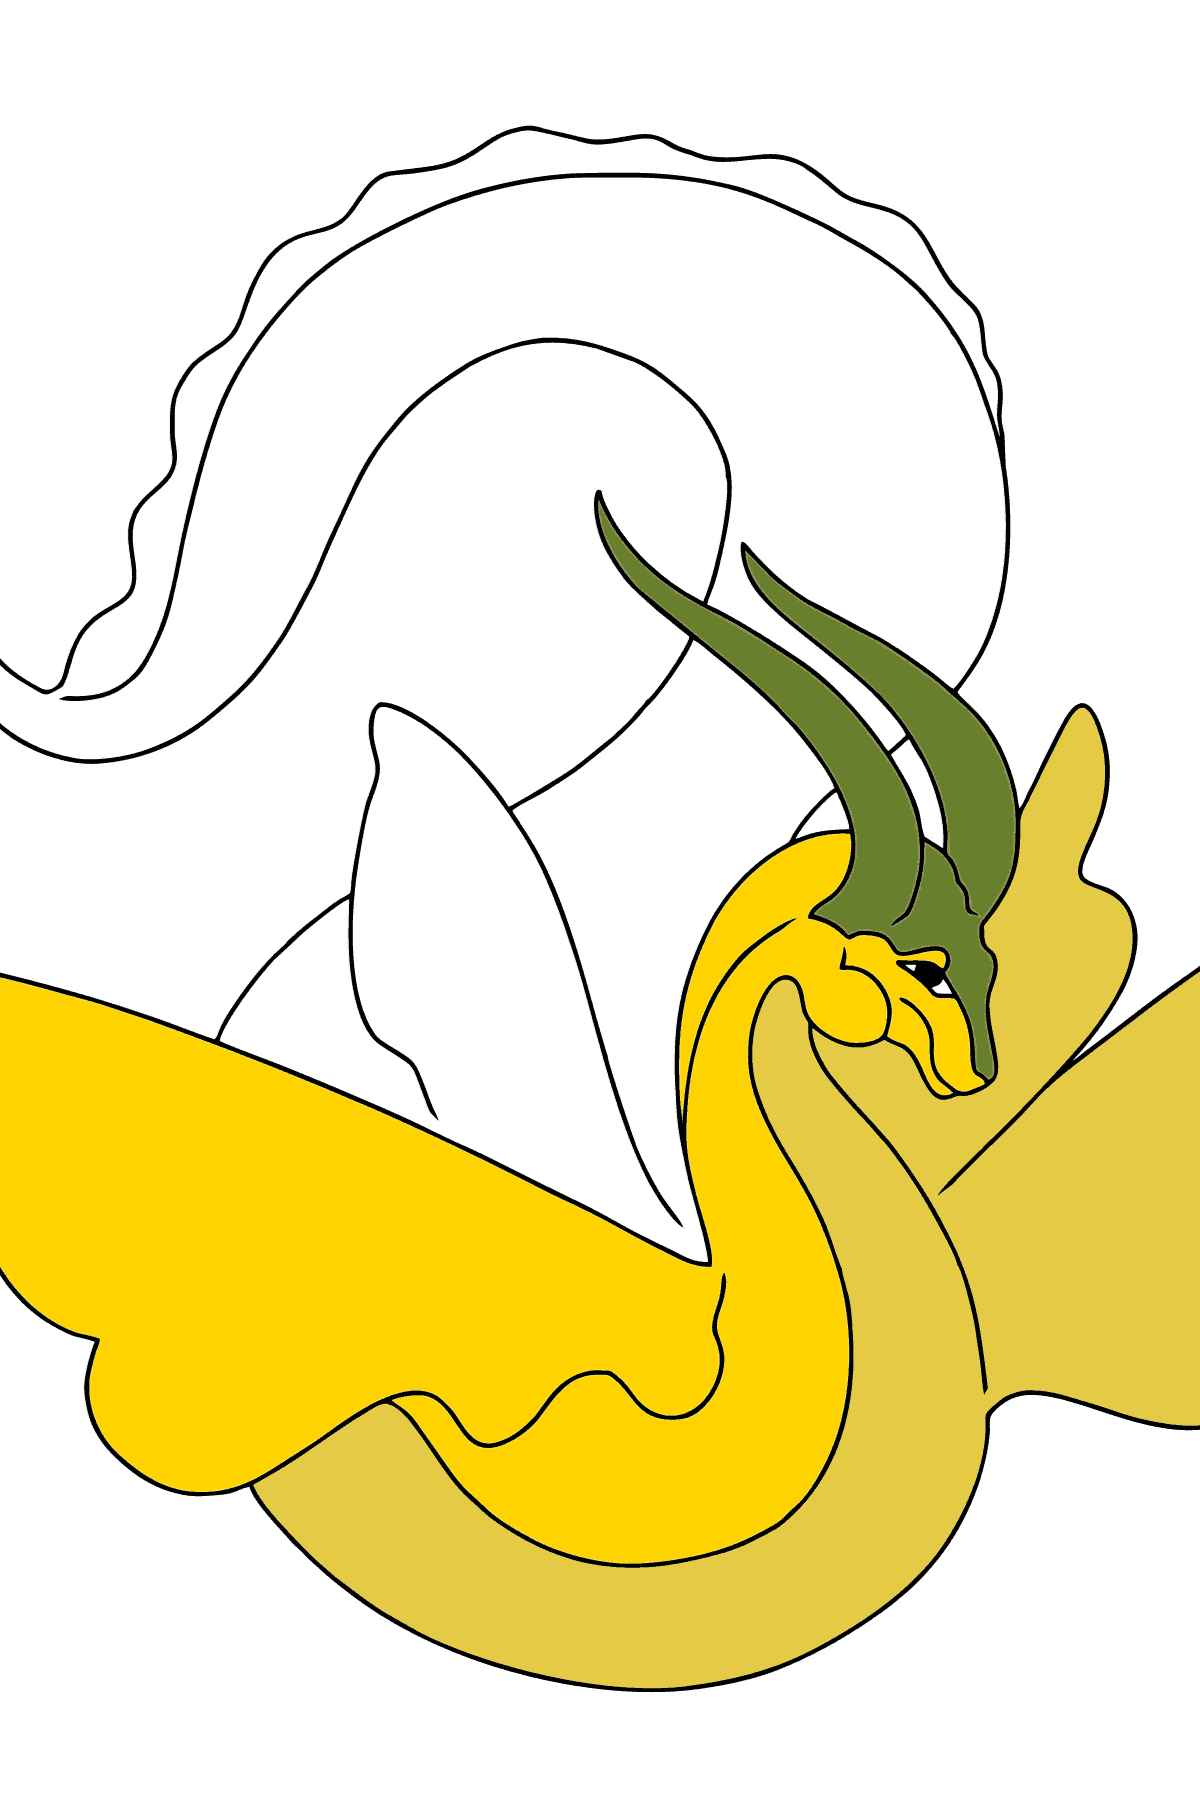 Coloring Page - A Dragon with Yellow Wings - Coloring Pages for Children